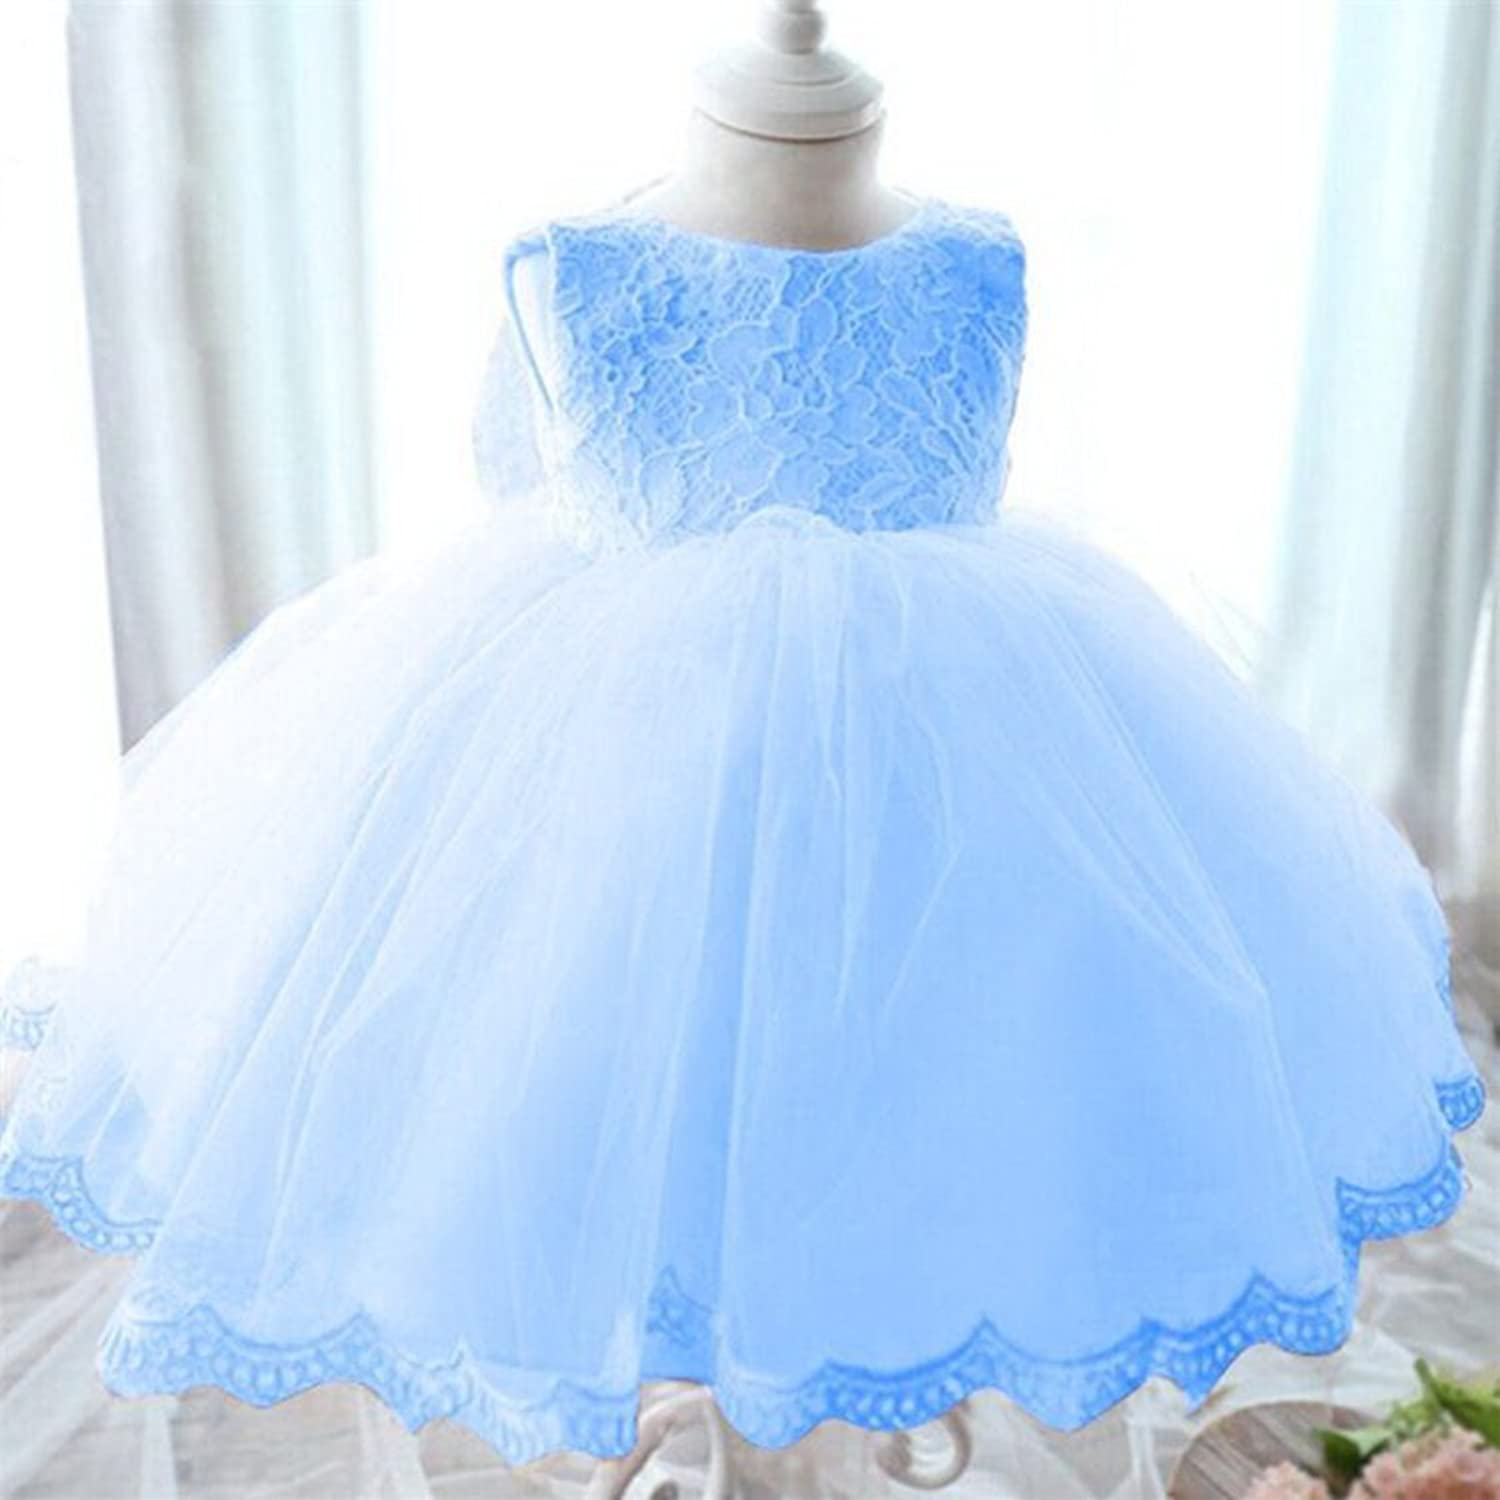 Baby girl dresses images